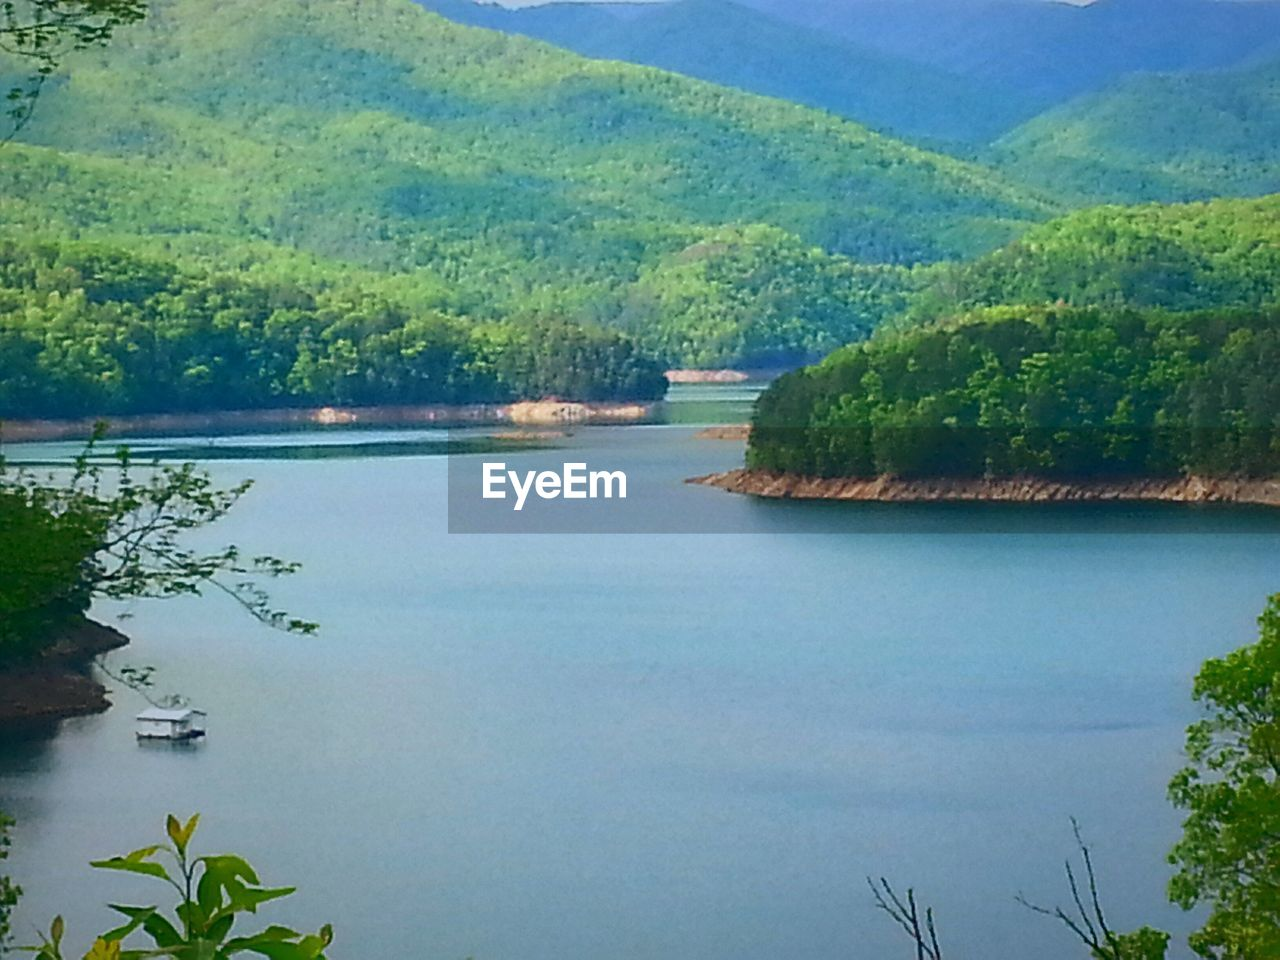 water, tree, tranquil scene, nature, no people, beauty in nature, tranquility, scenics, outdoors, day, lake, forest, landscape, growth, mountain, sky